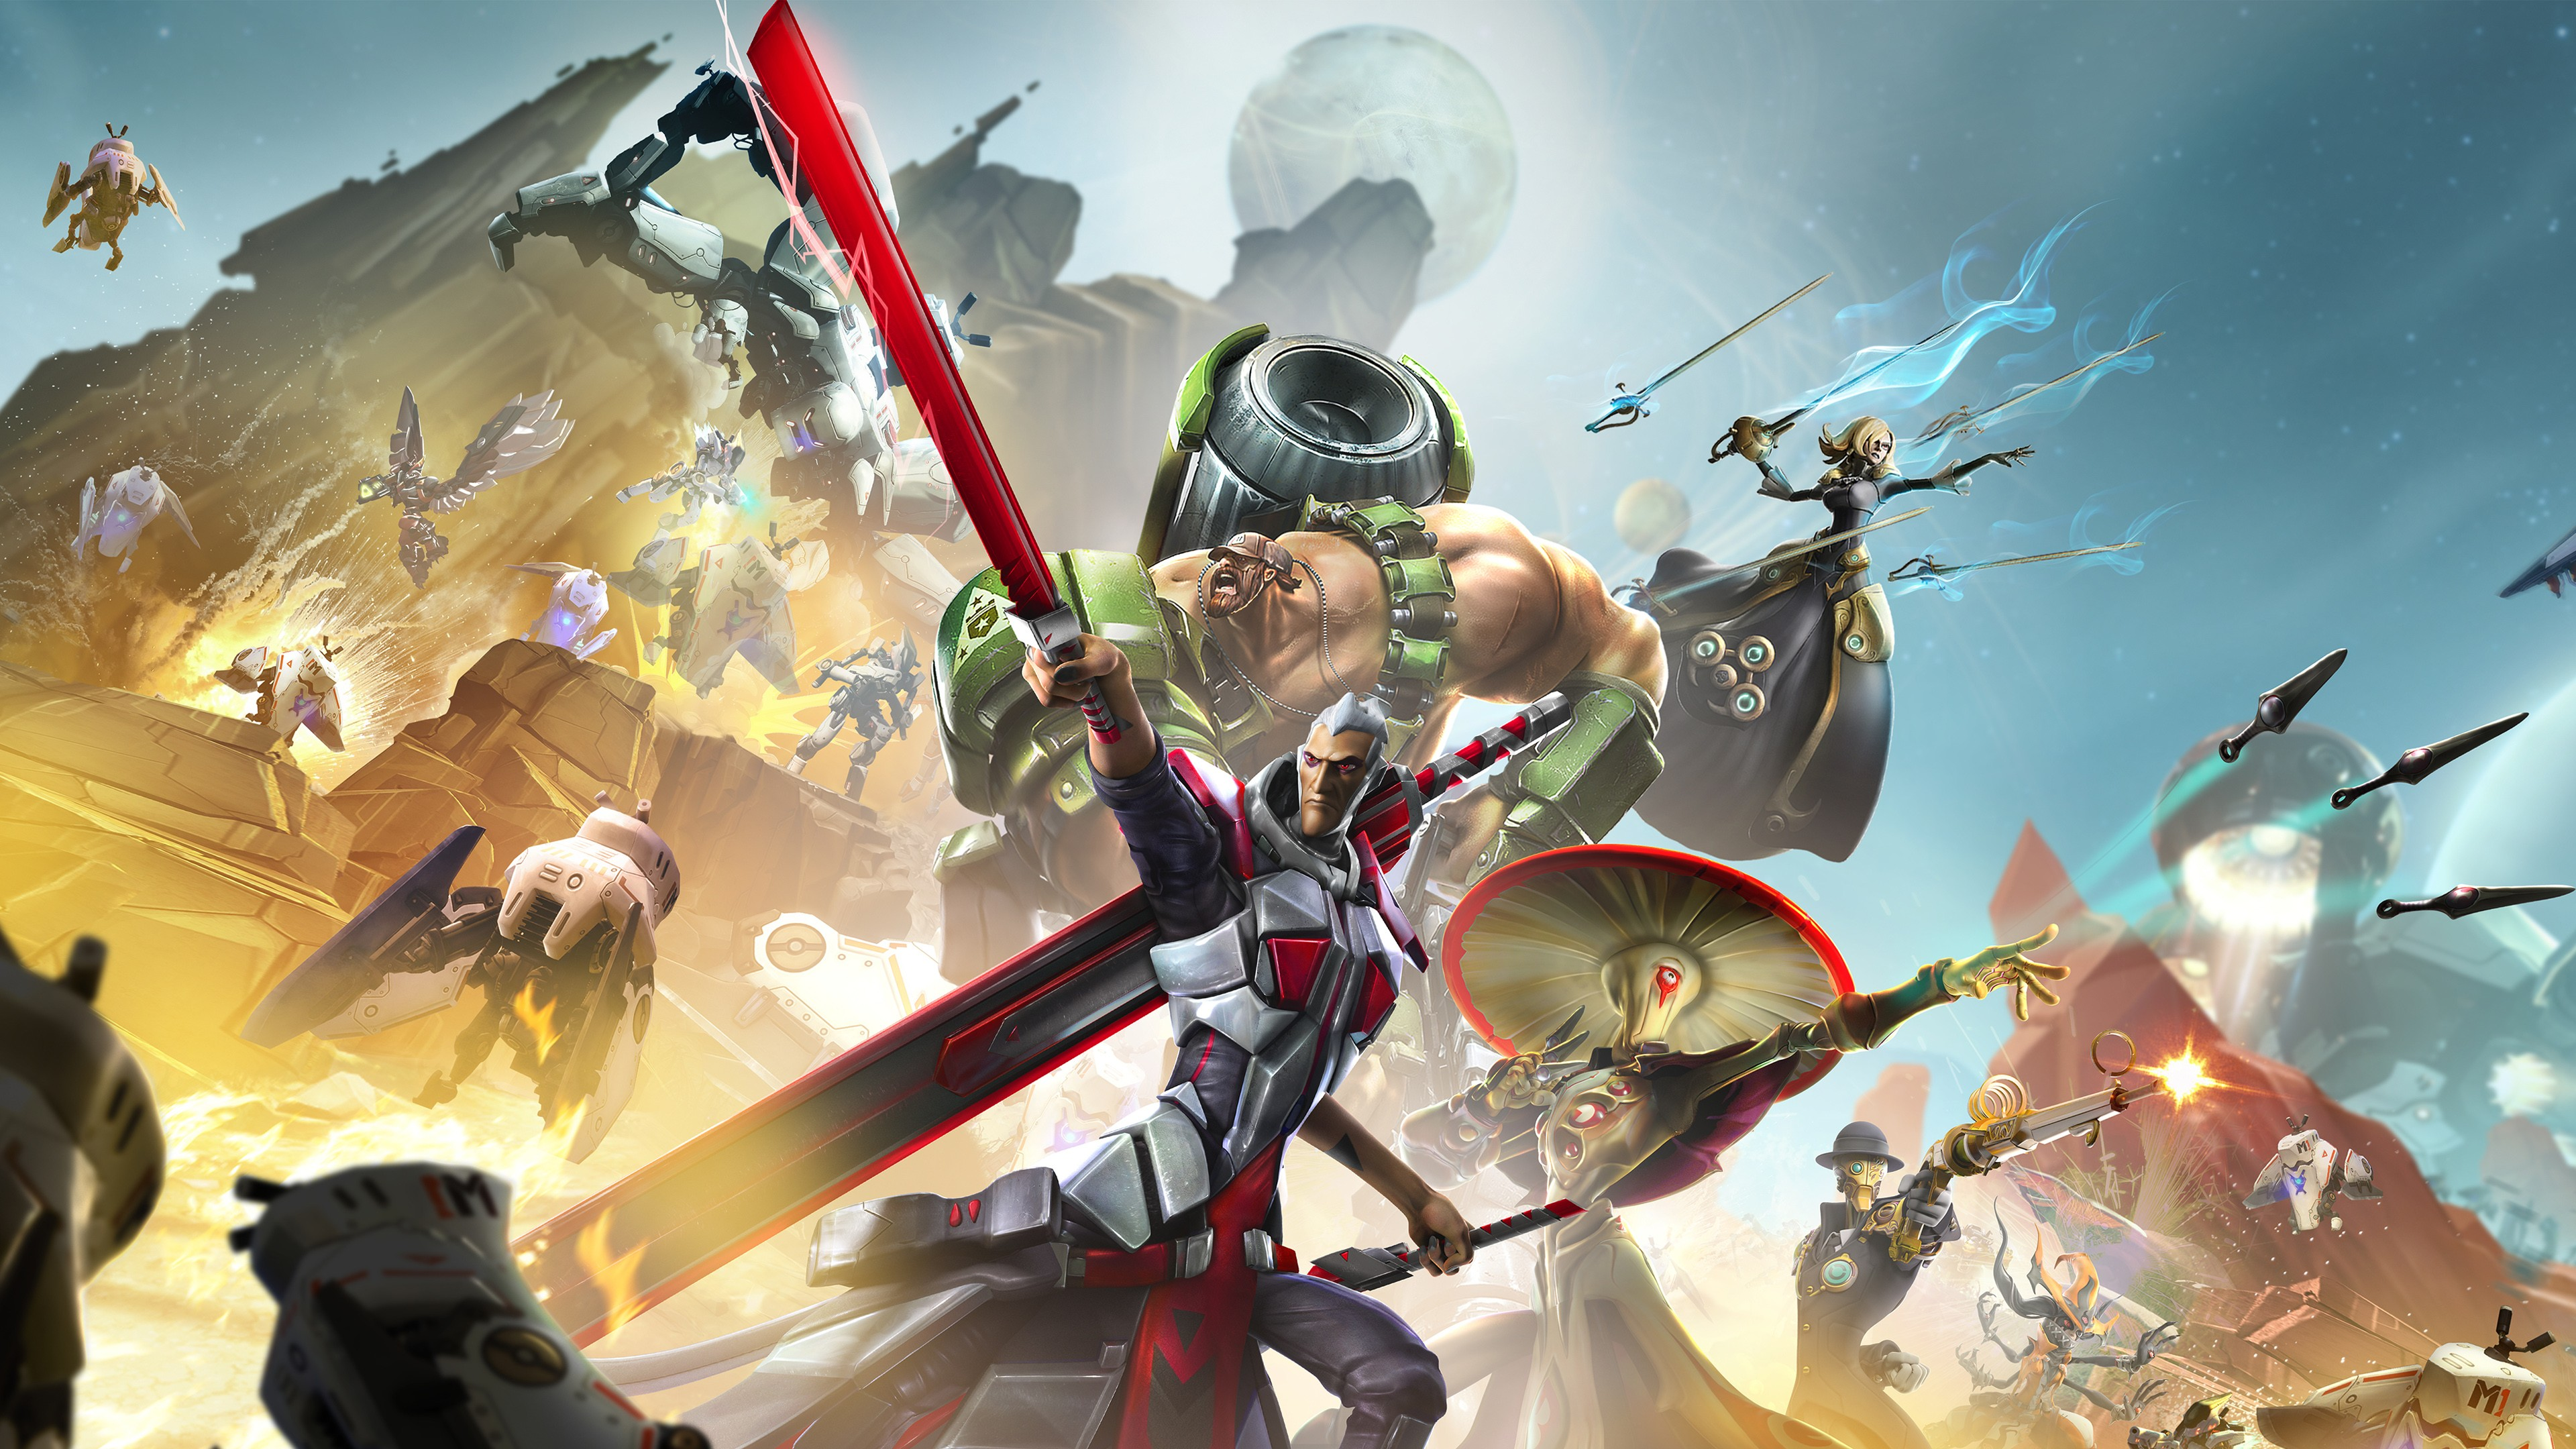 Battleborn Game 2 Hd Games 4k Wallpapers Images Backgrounds Photos And Pictures